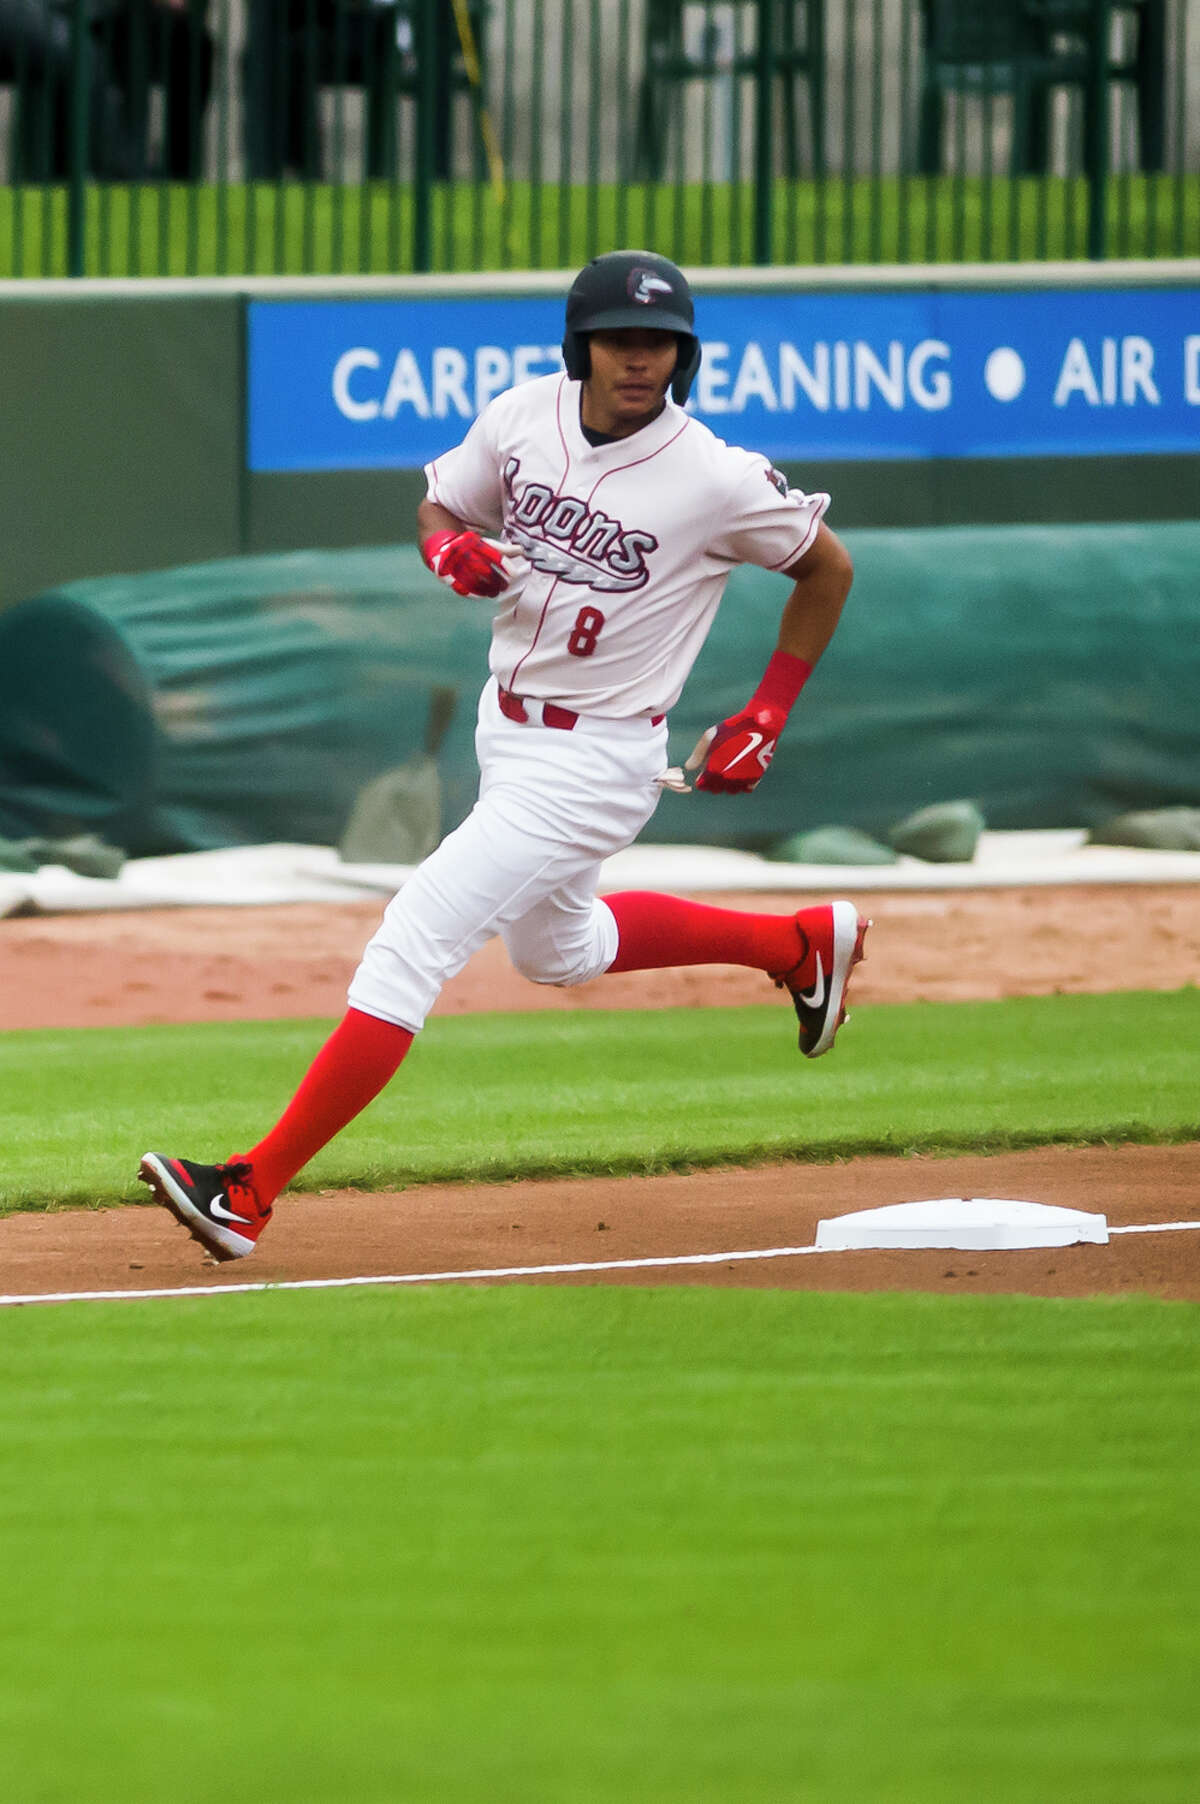 Leonel Valera, shown in a file photo,hit his second grand slam of the season on Sunday during the Great Lakes Loons' doubleheader sweep of the Lake County Captains at Dow Diamond. (Katy Kildee/kkildee@mdn.net)